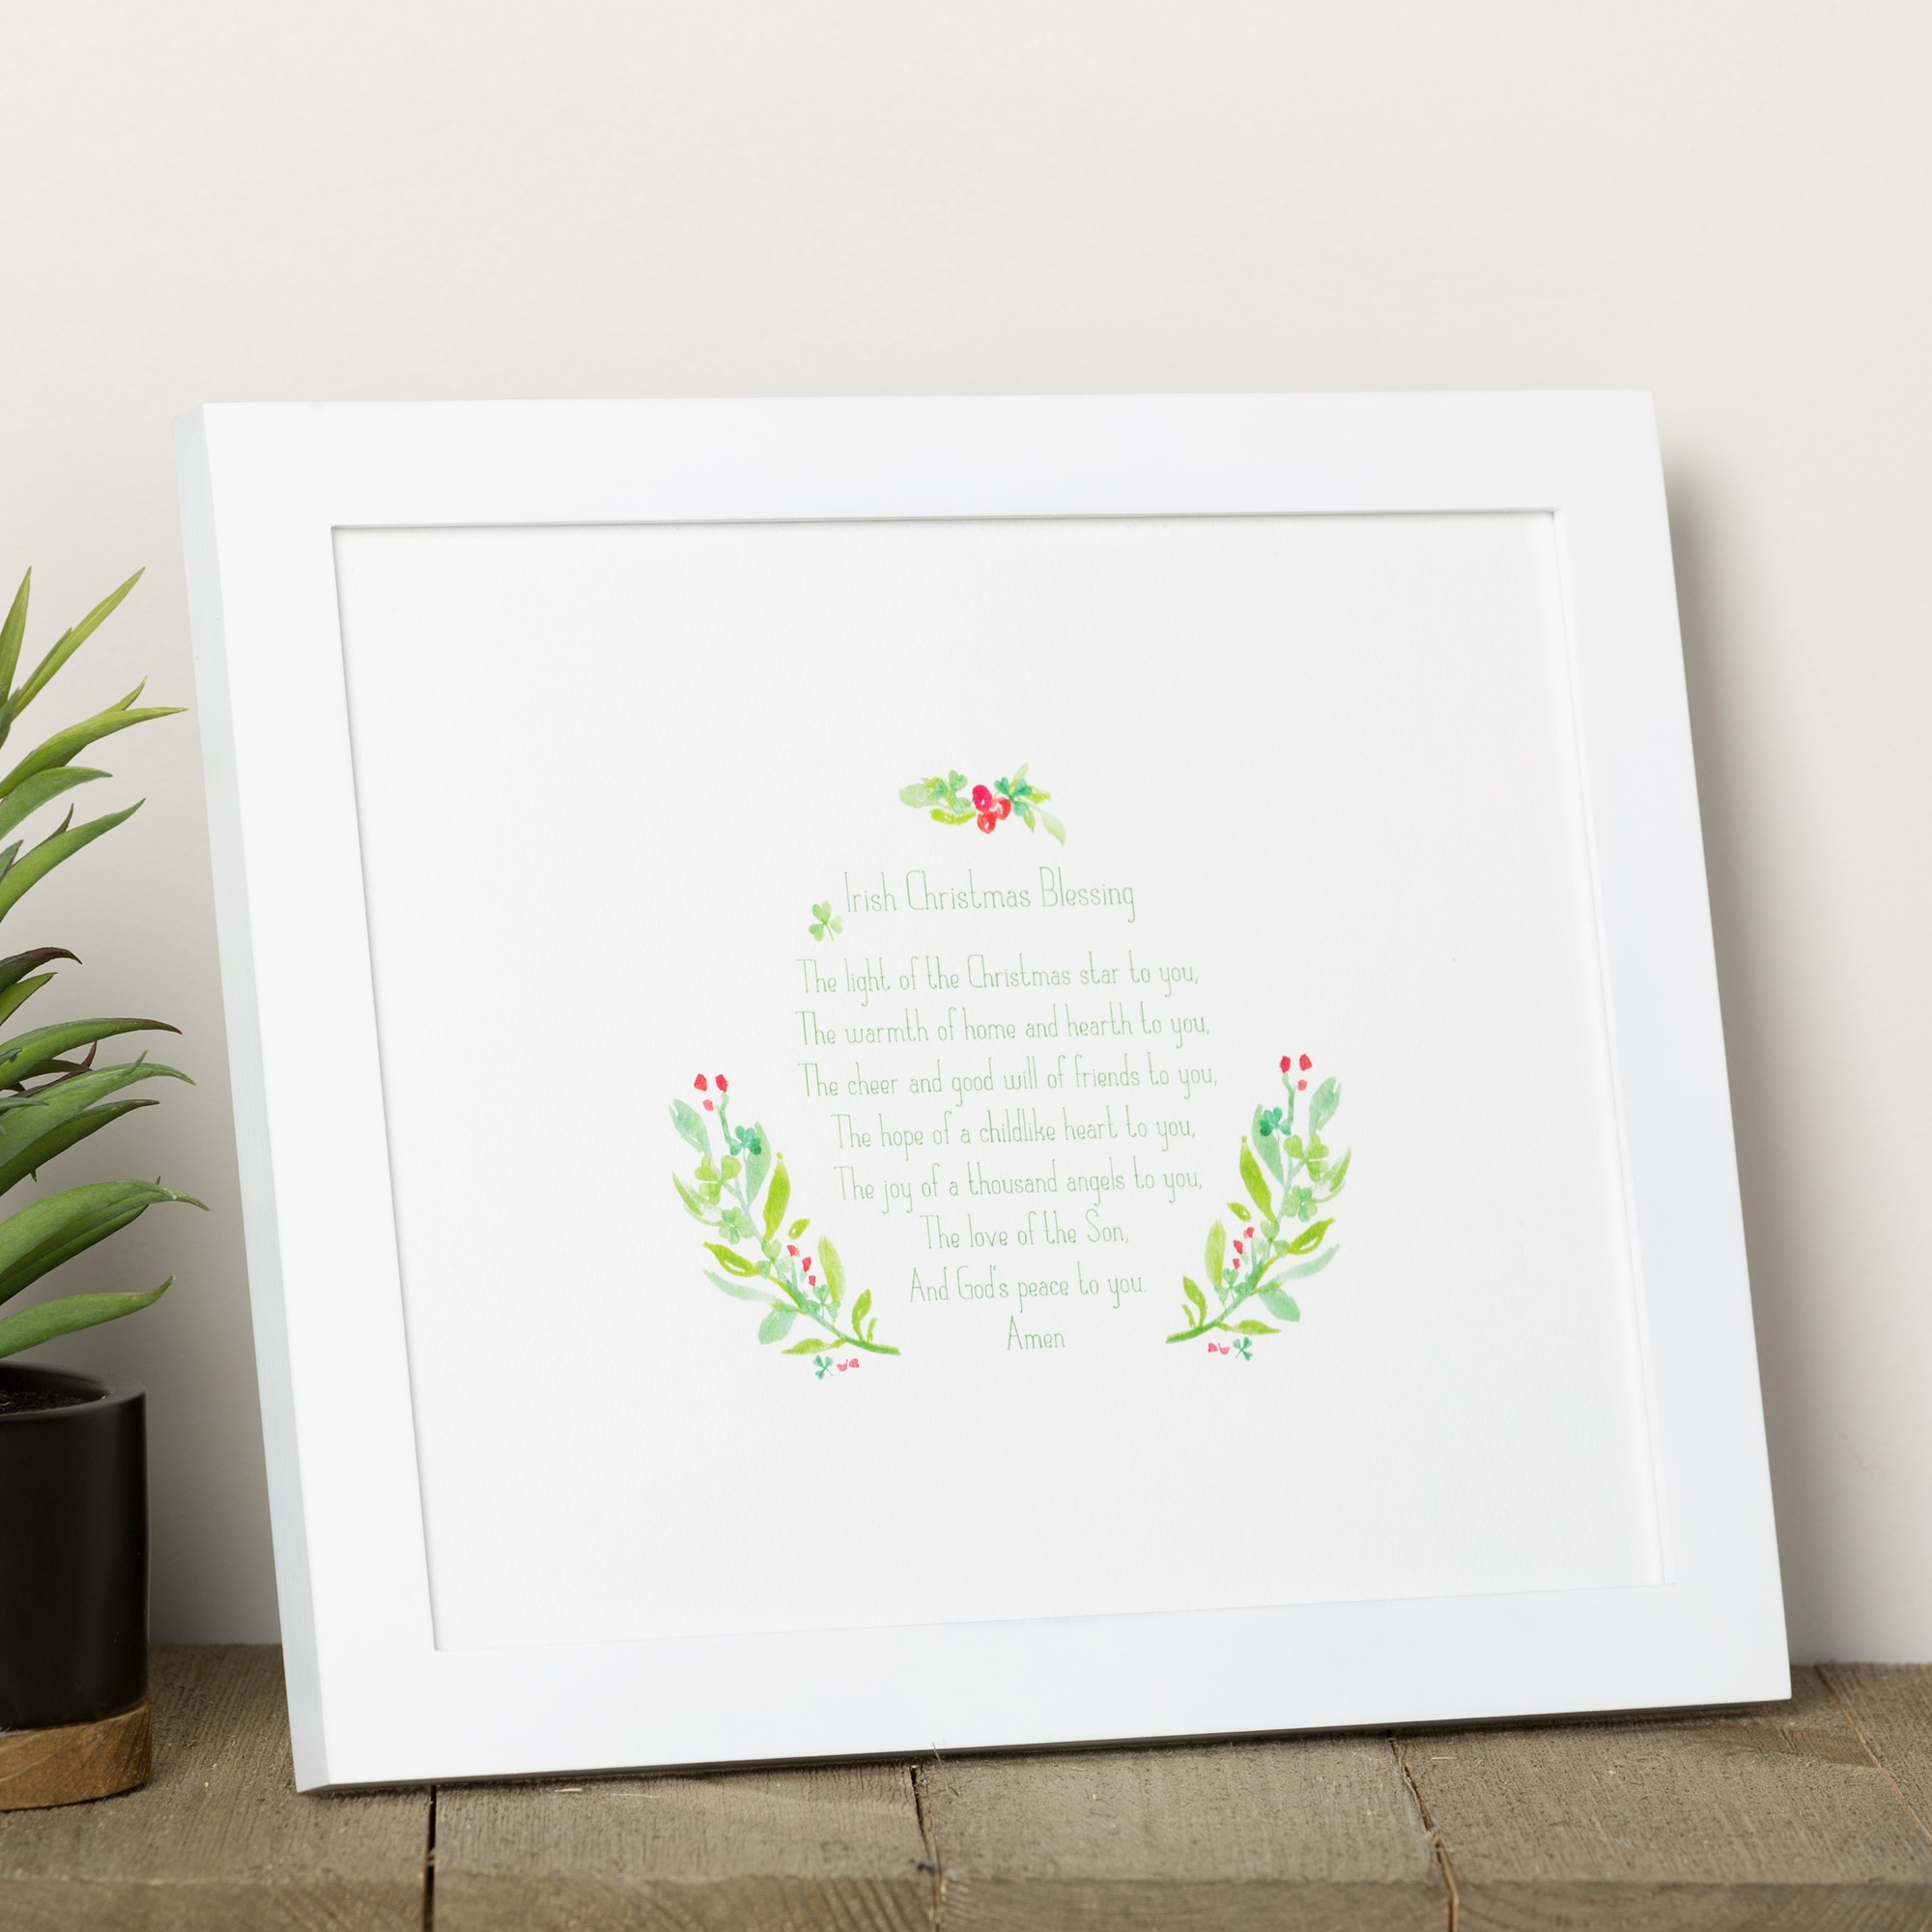 Irish Christmas Blessing Print | The Catholic Company